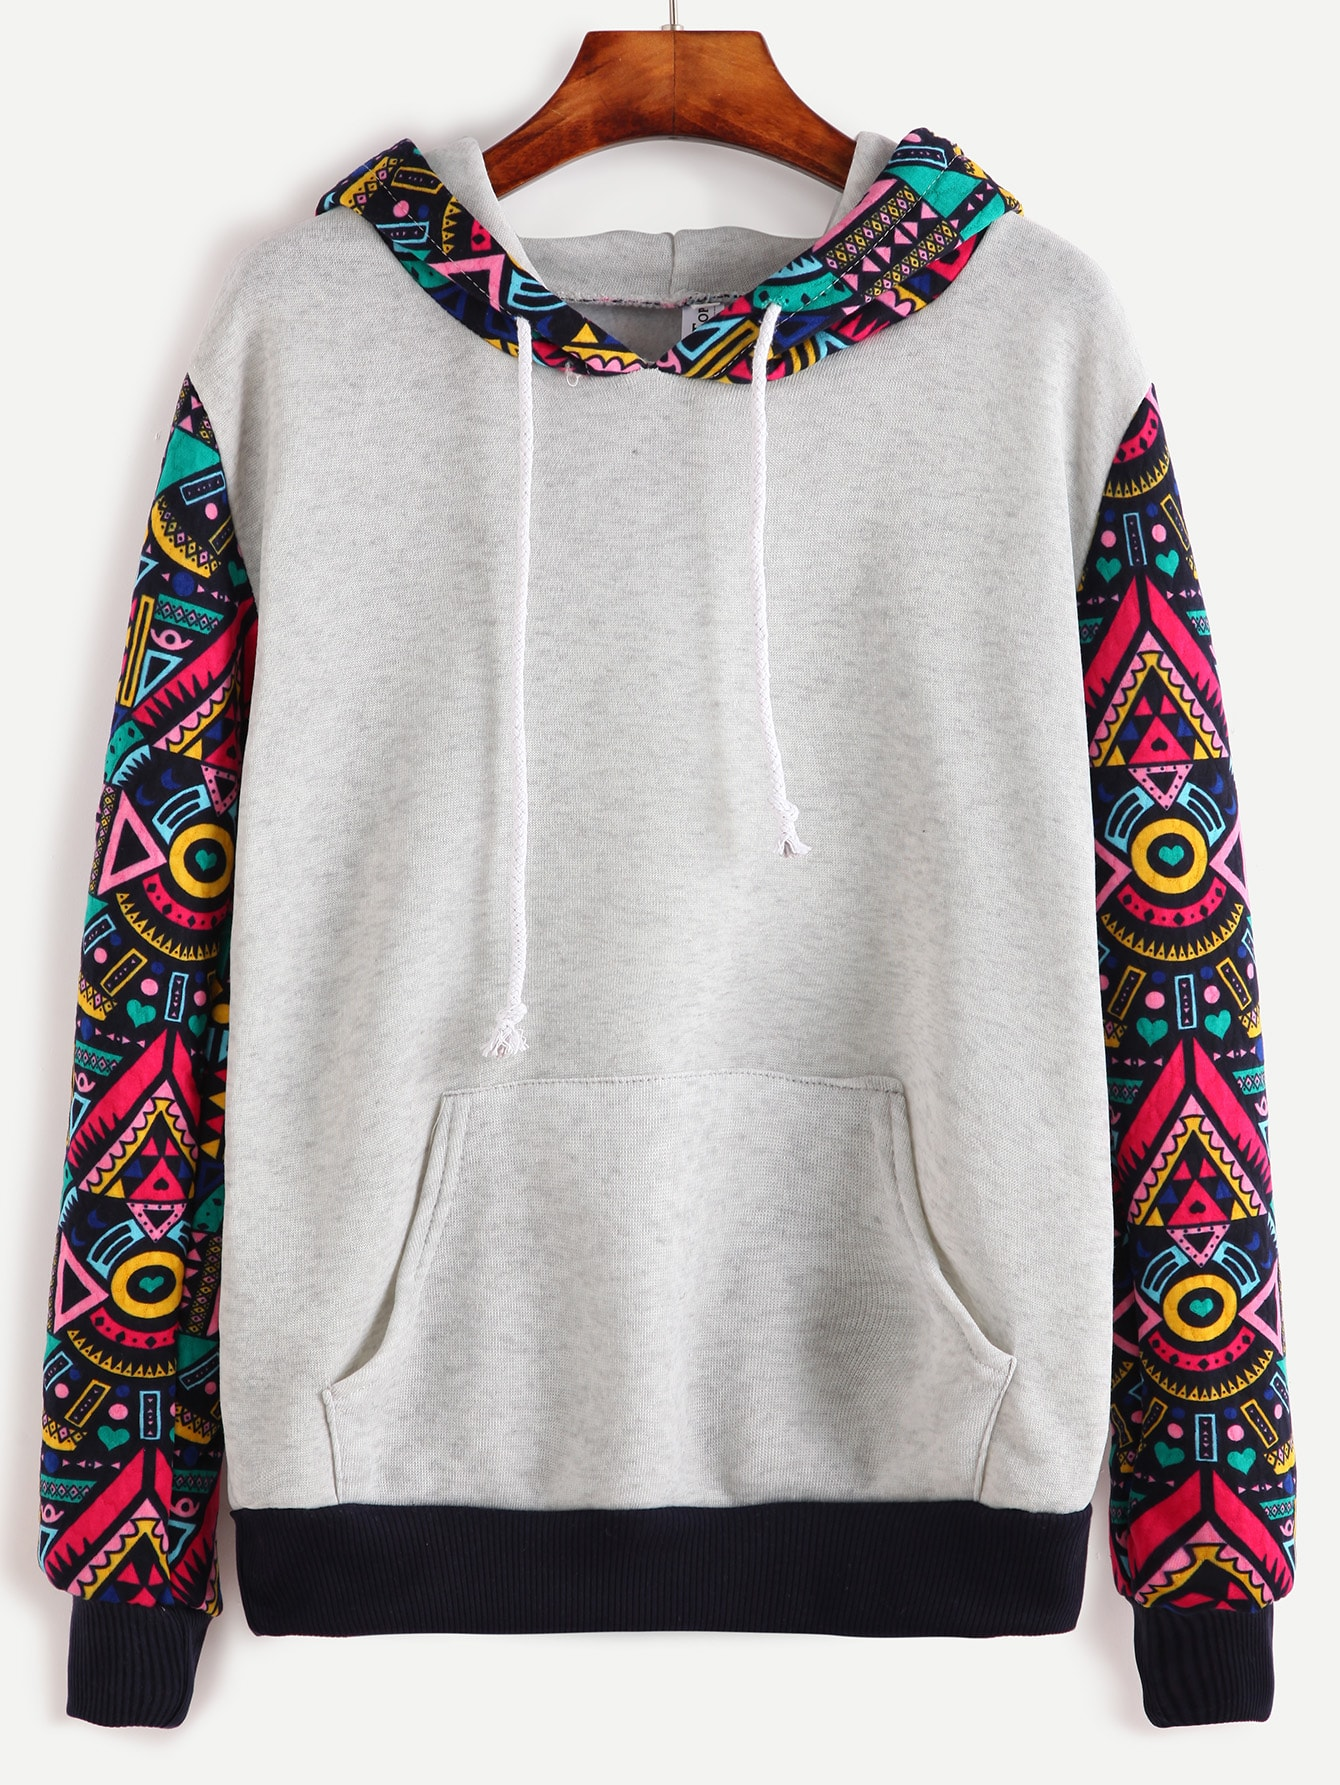 Contrast Sleeve And Hooded Sweatshirt With Kangaroo Pocket grey layered contrast color hooded strappy front sweatshirt